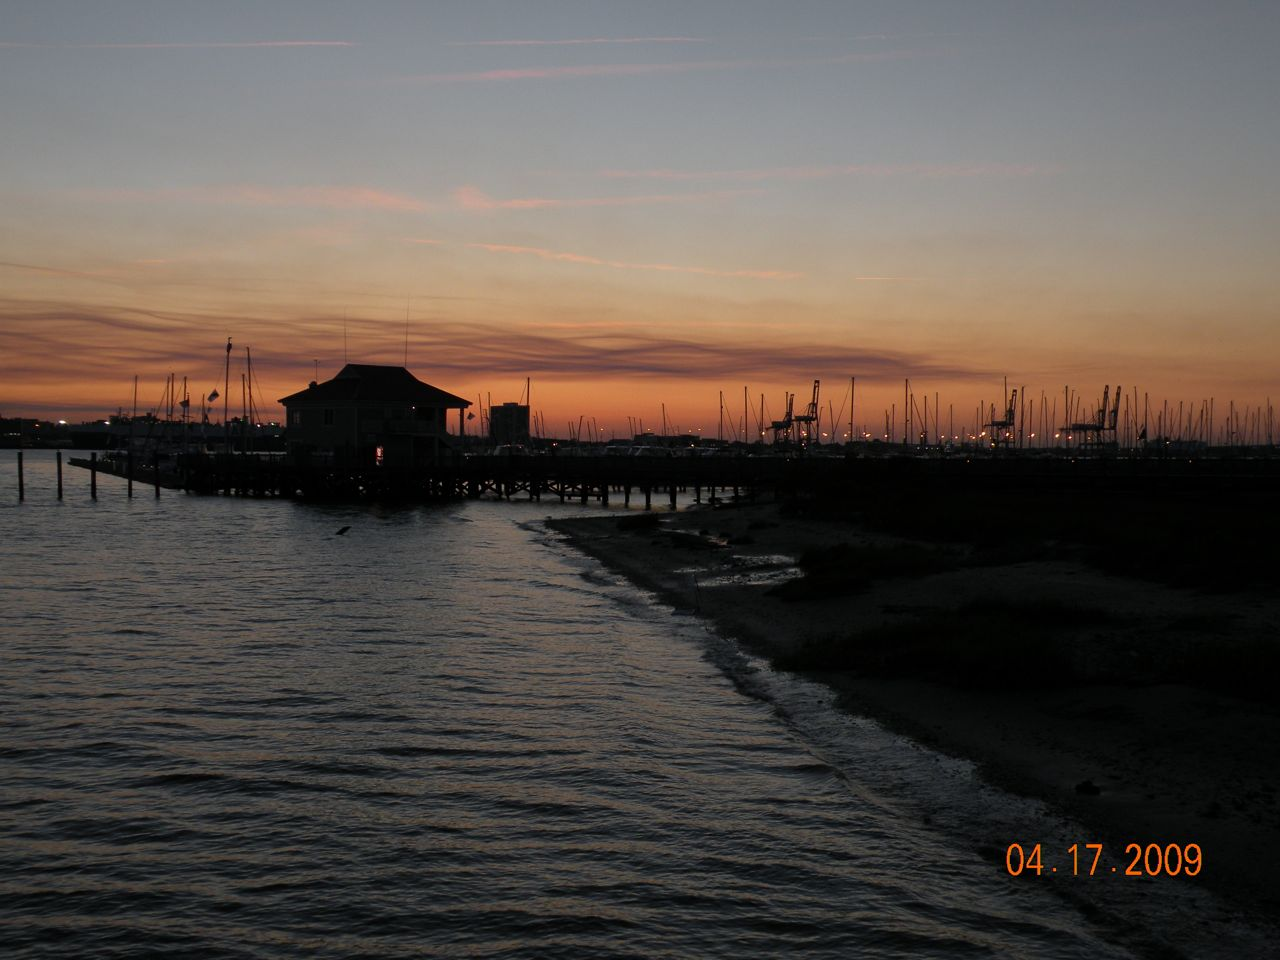 Charleston Harbour Marina at dusk. - (c) Copyright 2009